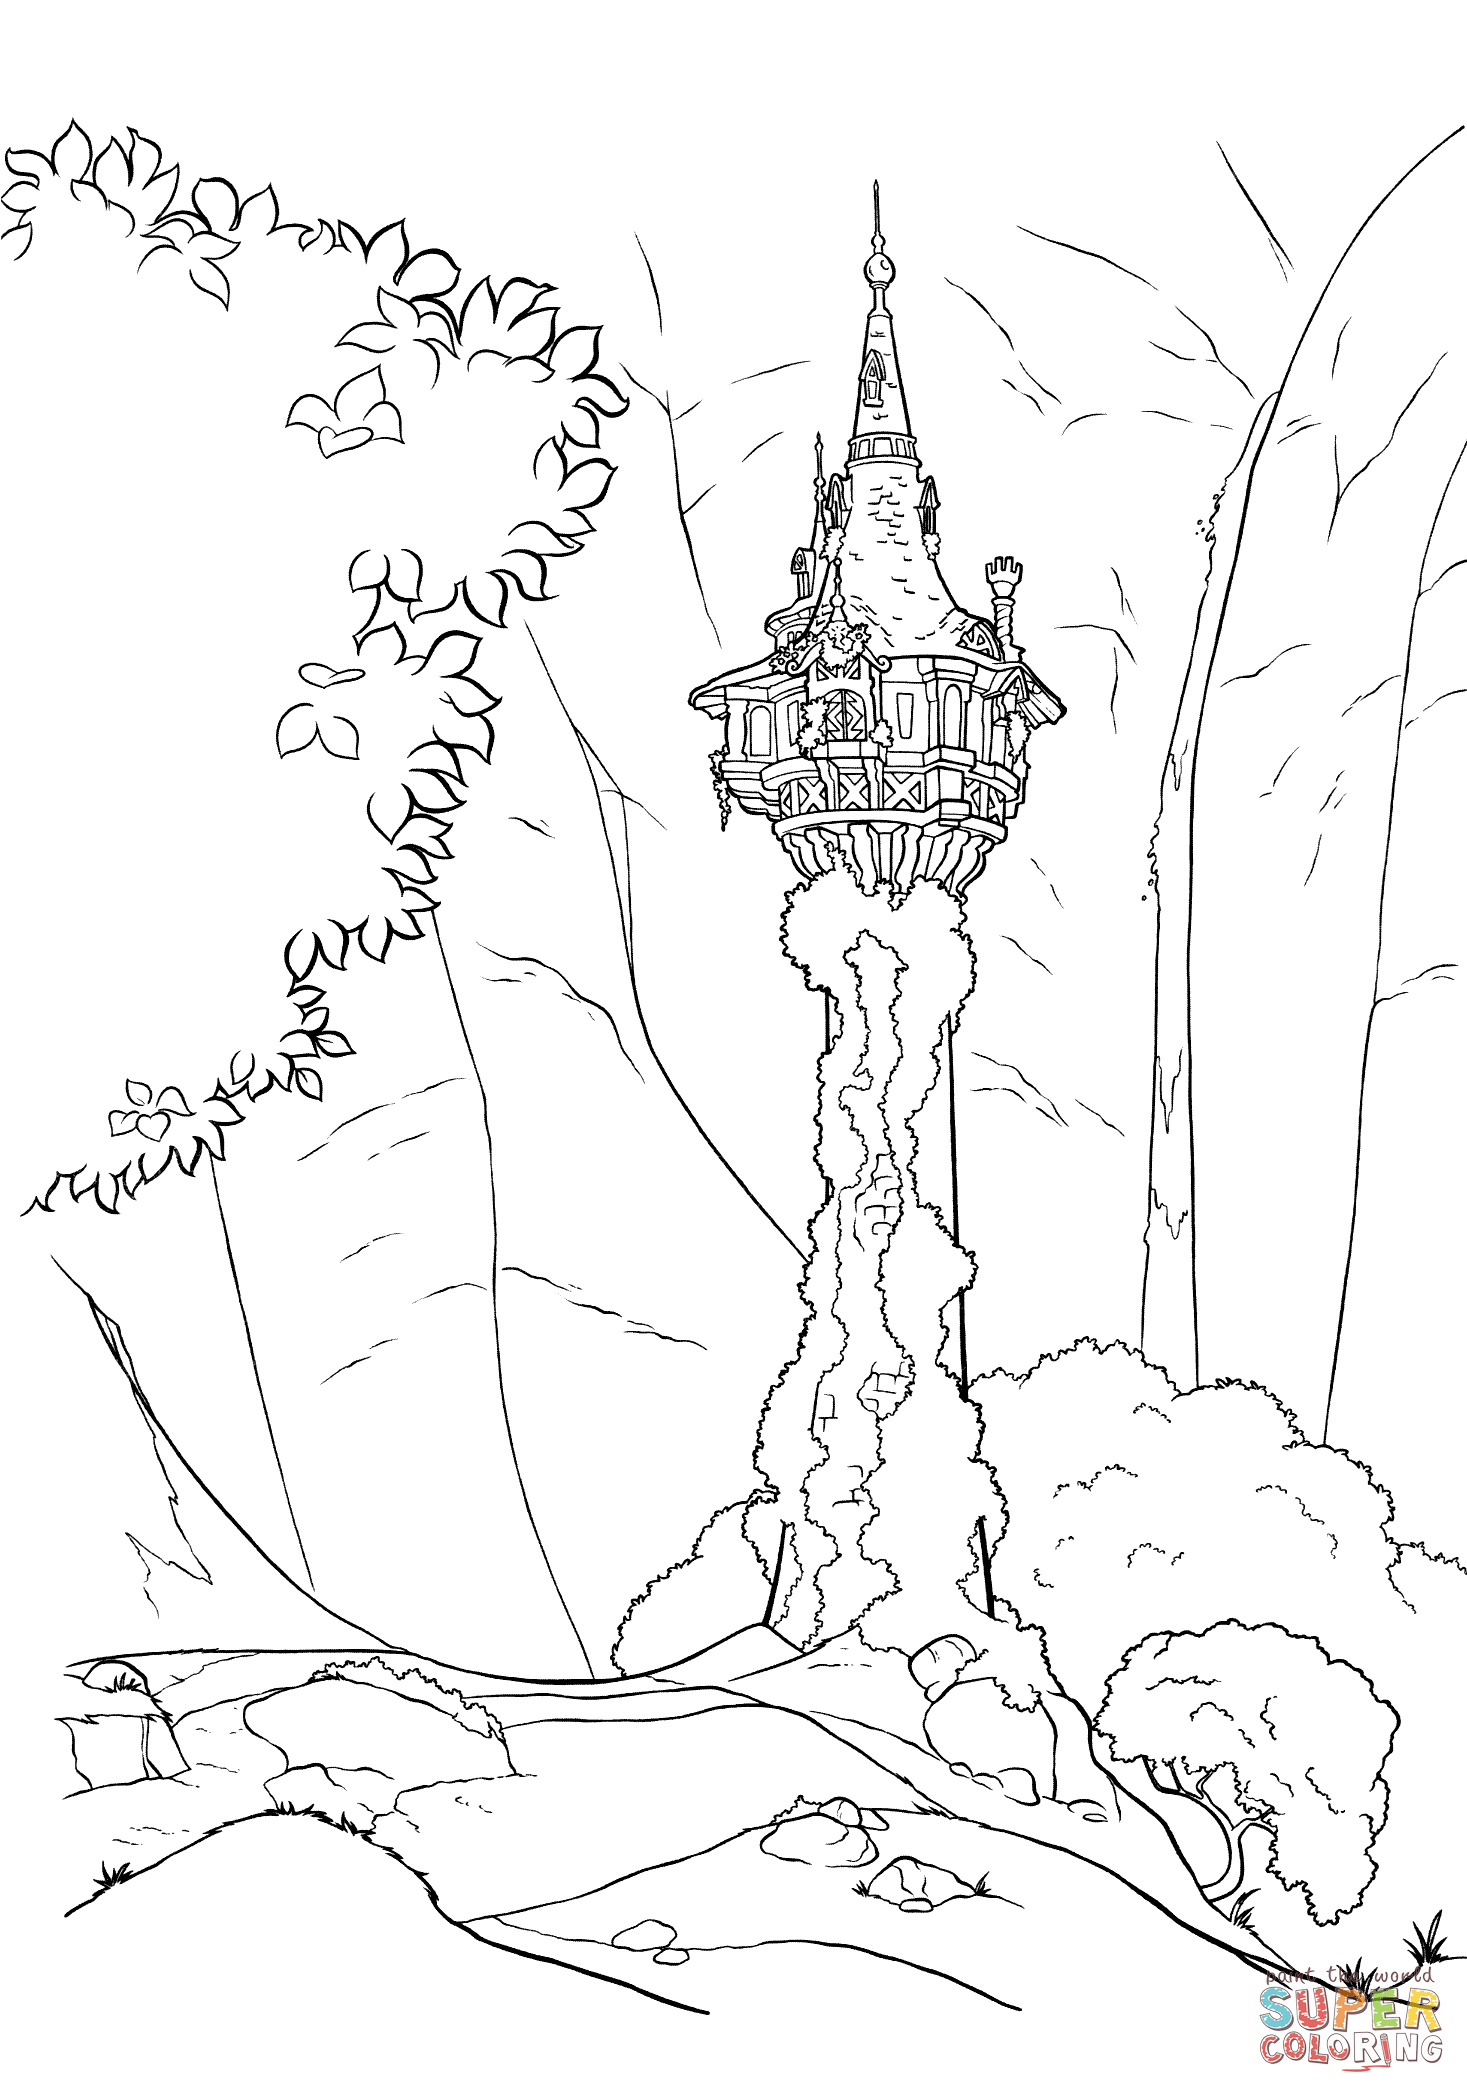 Rapunzel S Tower Coloring Page